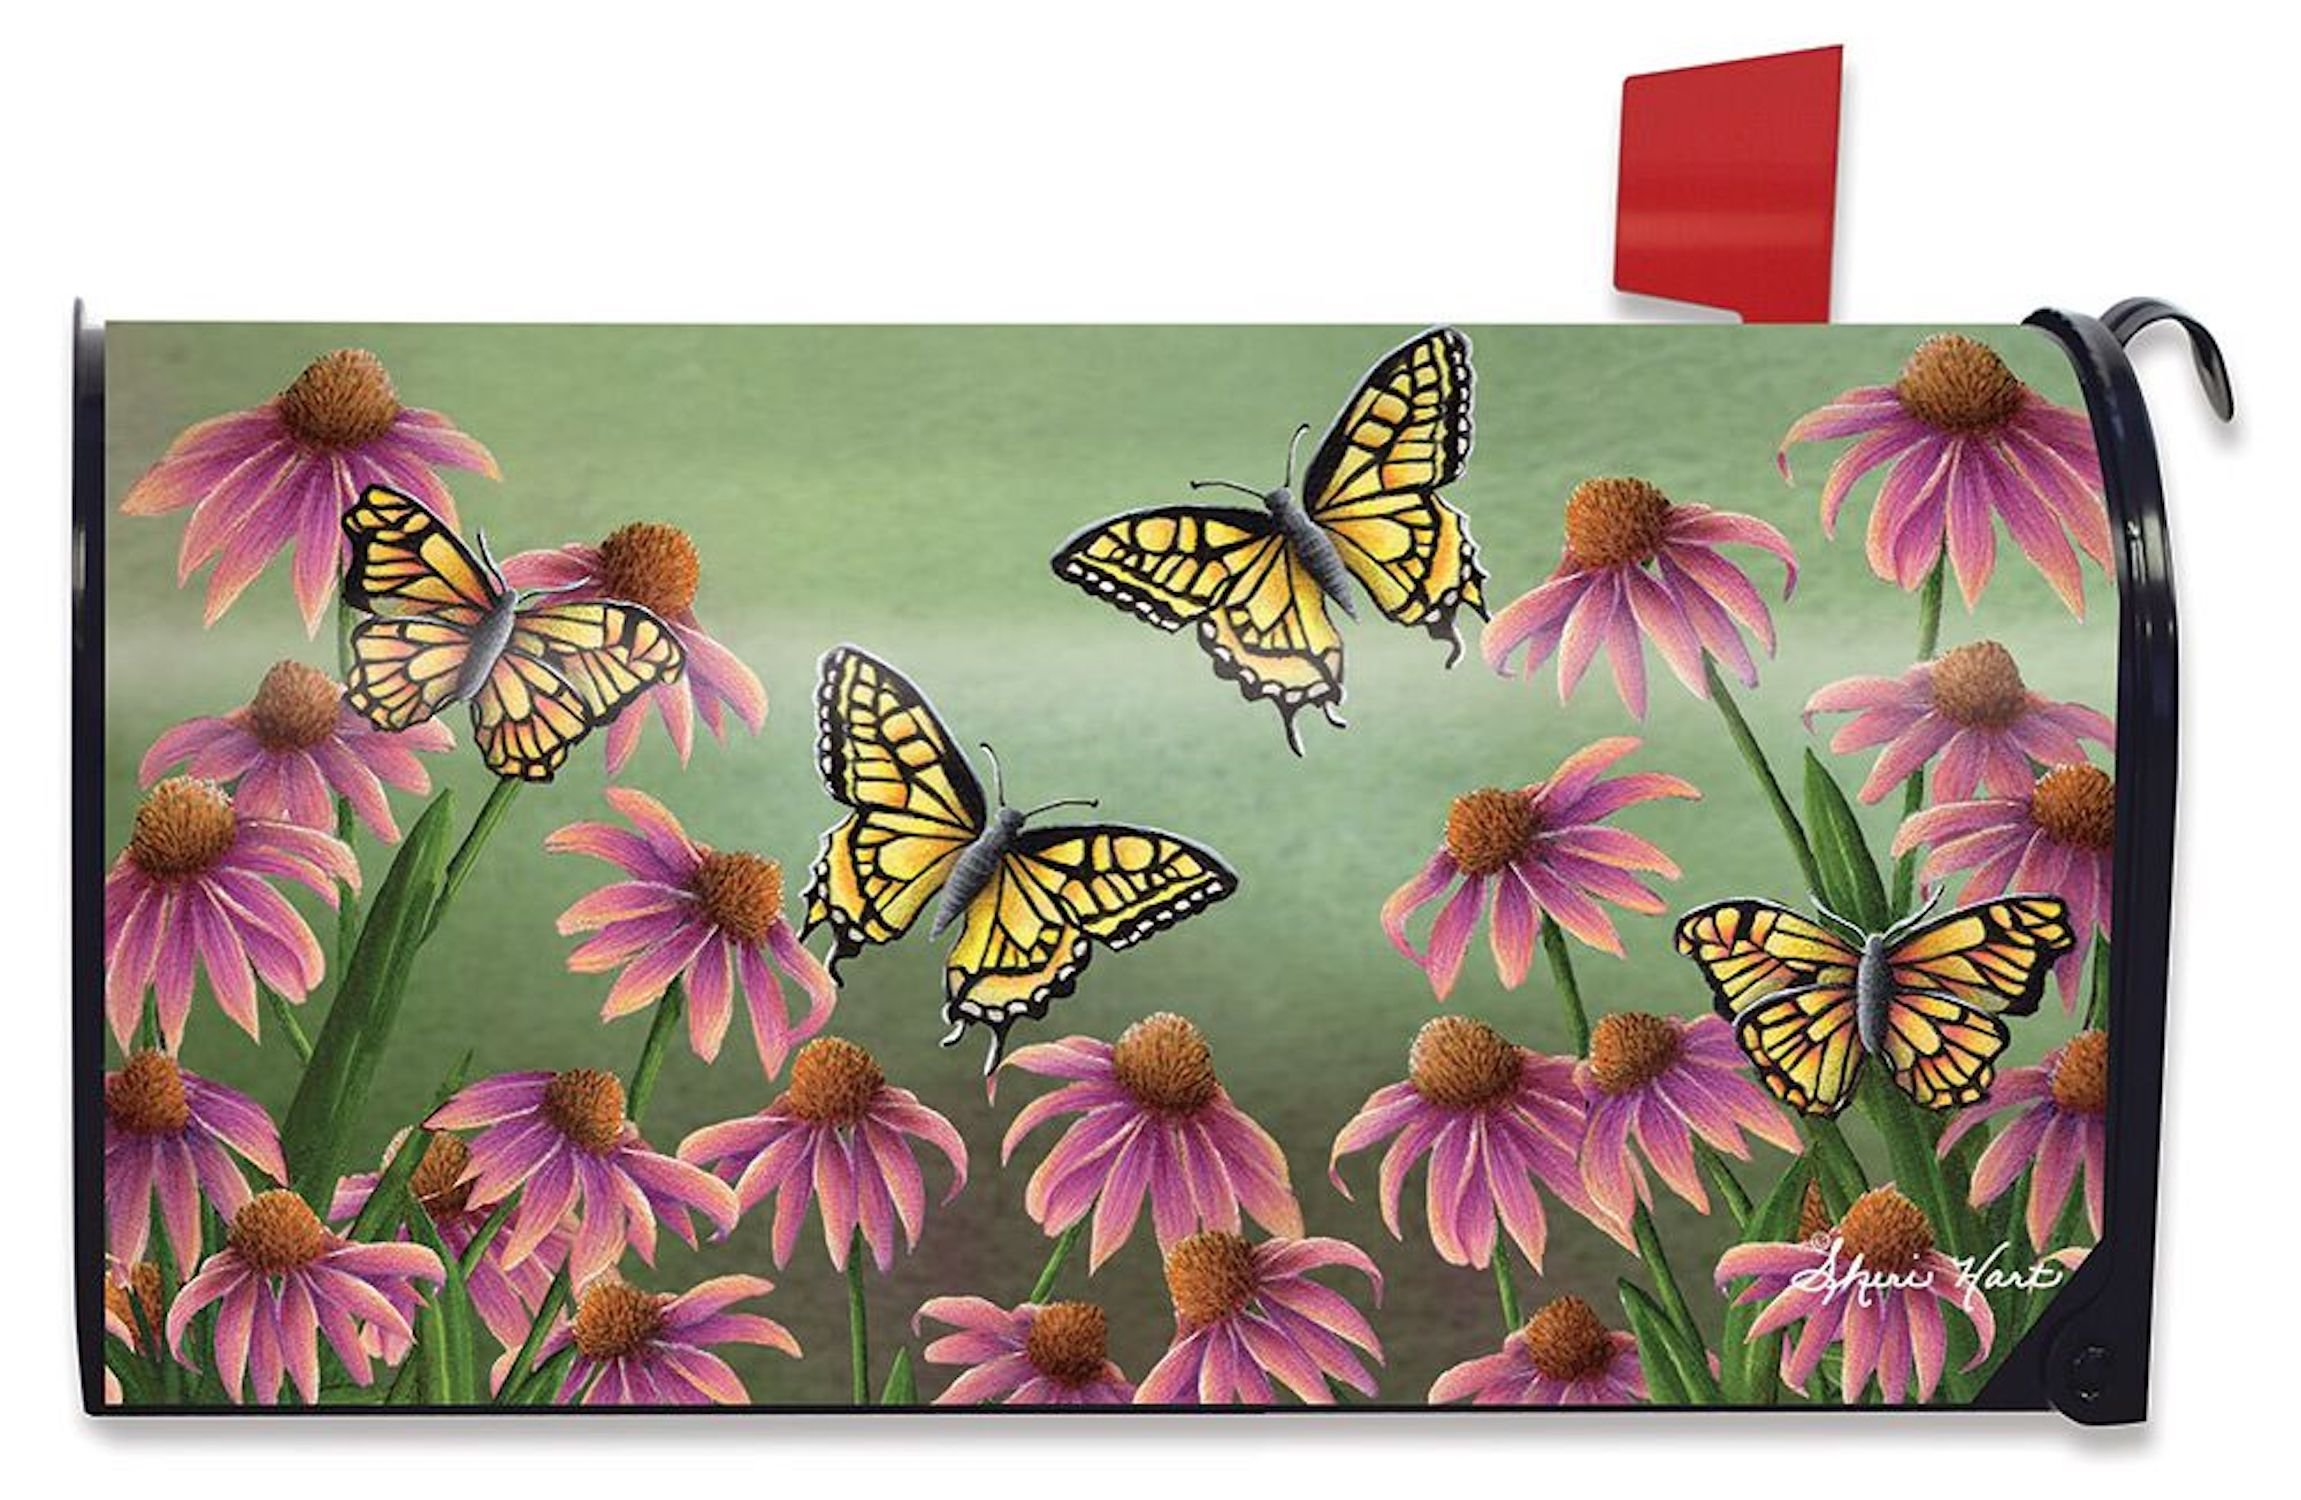 Briarwood Lane Echinacea Butterfly Spring Mailbox Cover Monarch Butterflies Floral Standard by Briarwood Lane